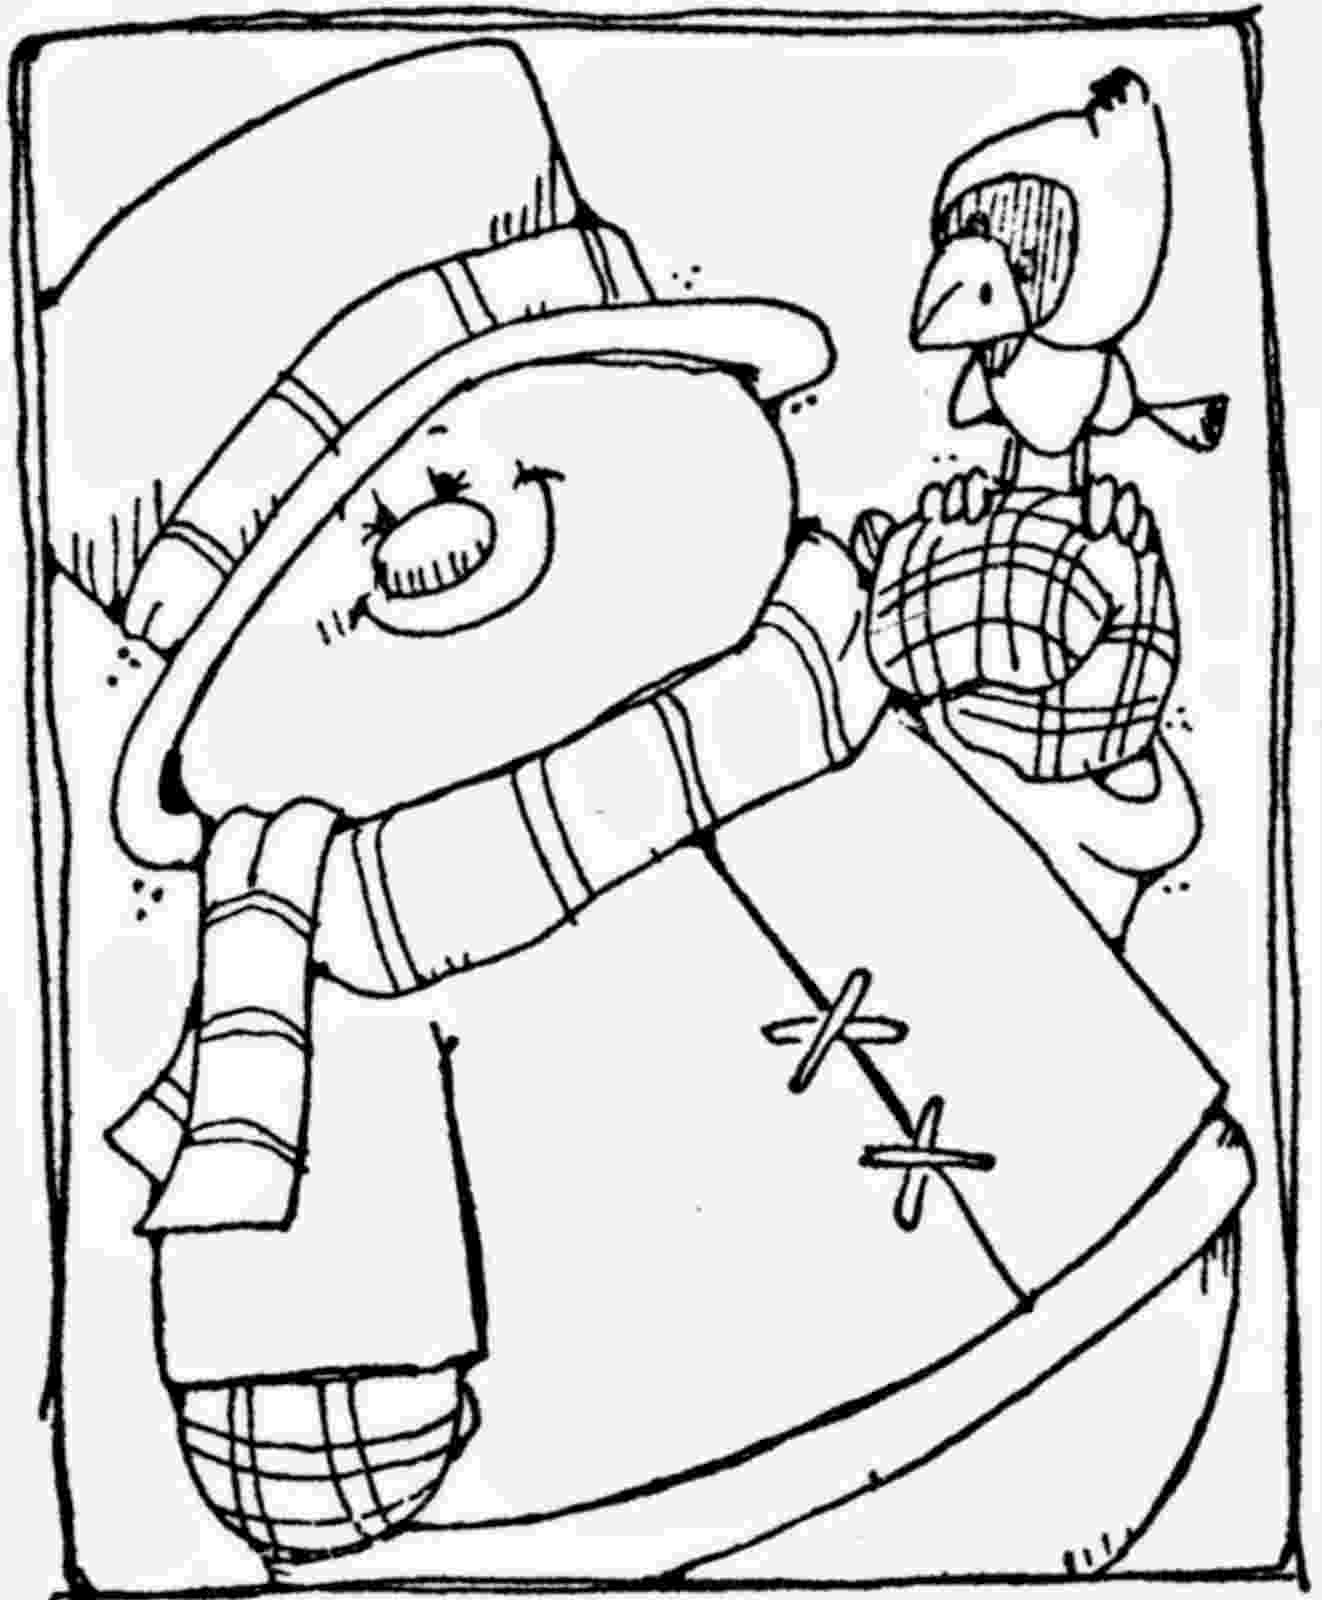 snowmancoloring sheets cute snowmen free printable coloring pages oh my fiesta snowmancoloring sheets 1 1